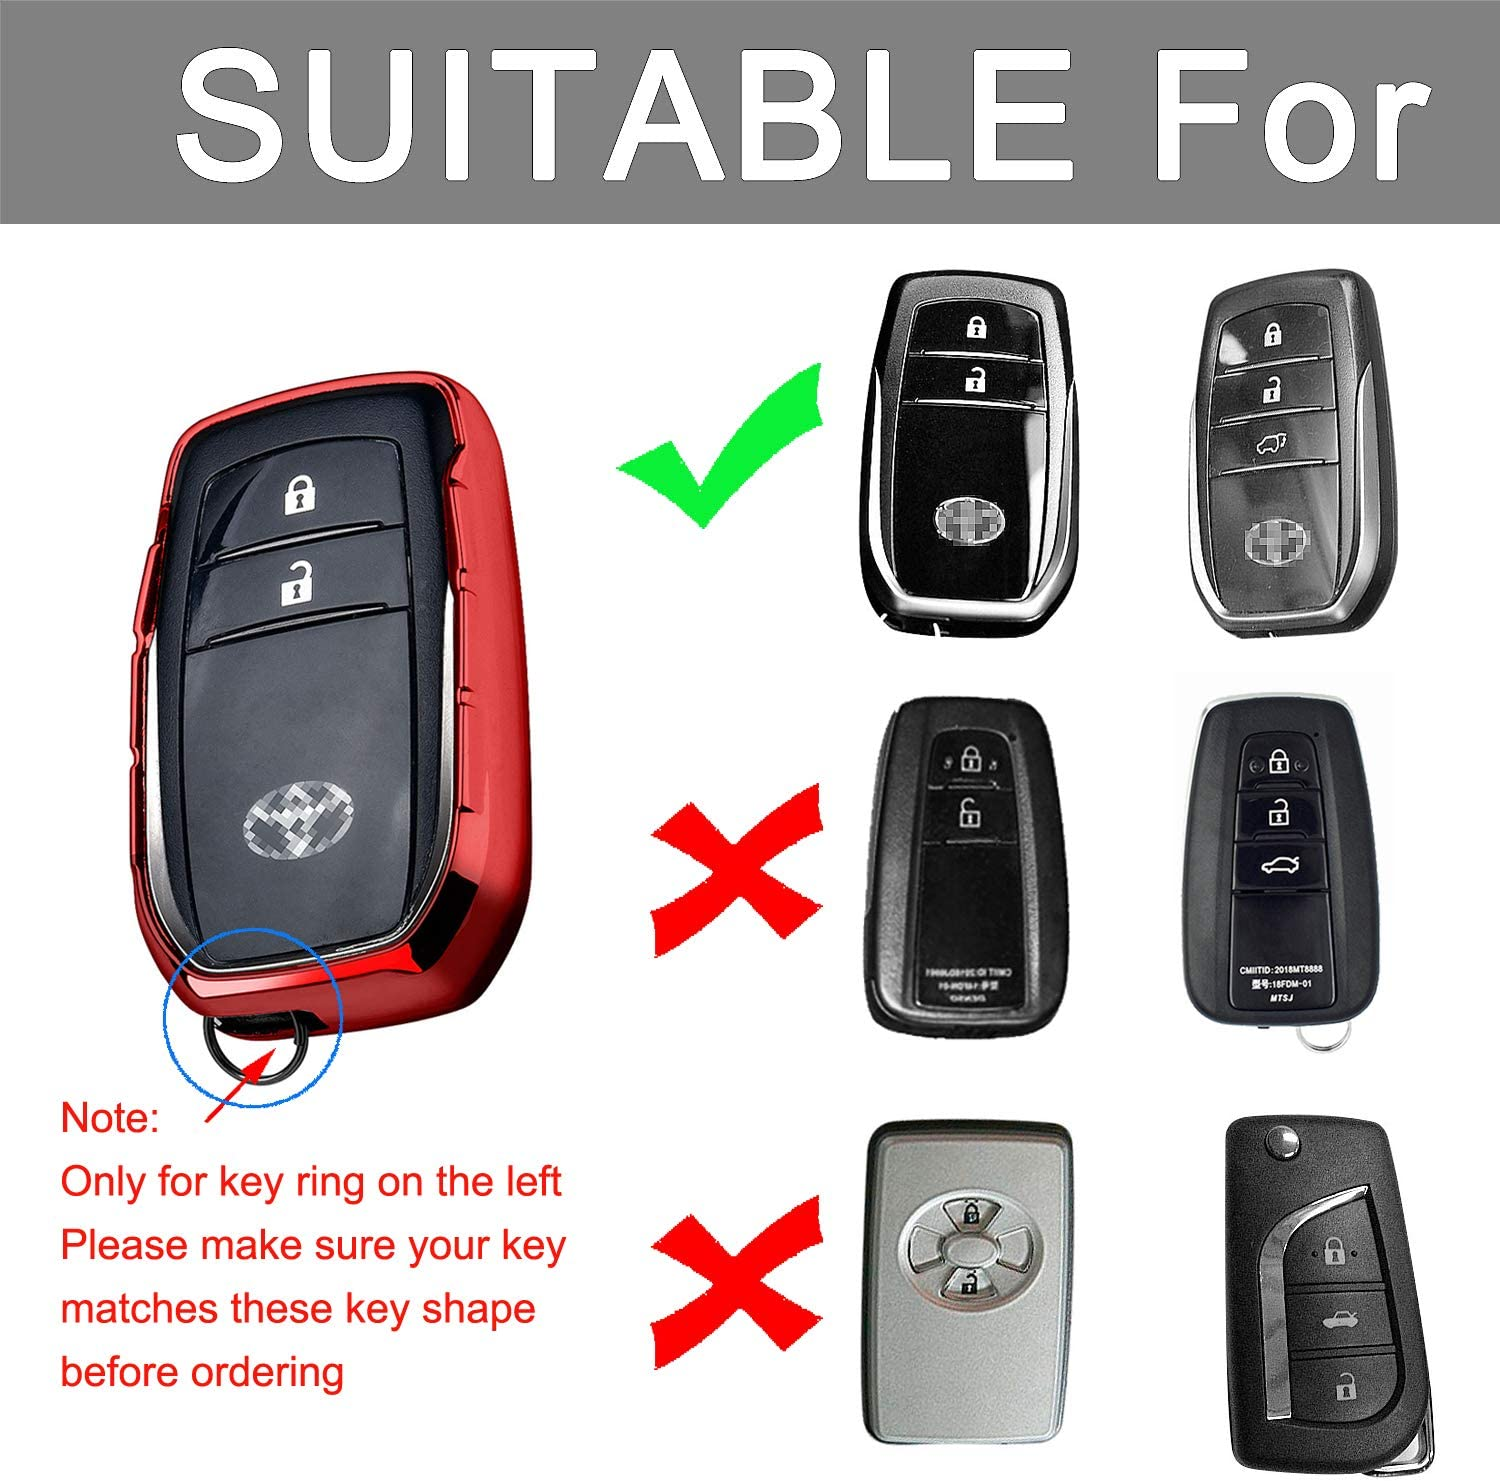 YIJINSHENG TPU Car Key Soft Plating Protection Shell Case Quicksand Shining Star Cover for Toyota Holder Toyota Camry Highlander Rav 4 Corolla Smart Remote Key Shell with Key Chain Red